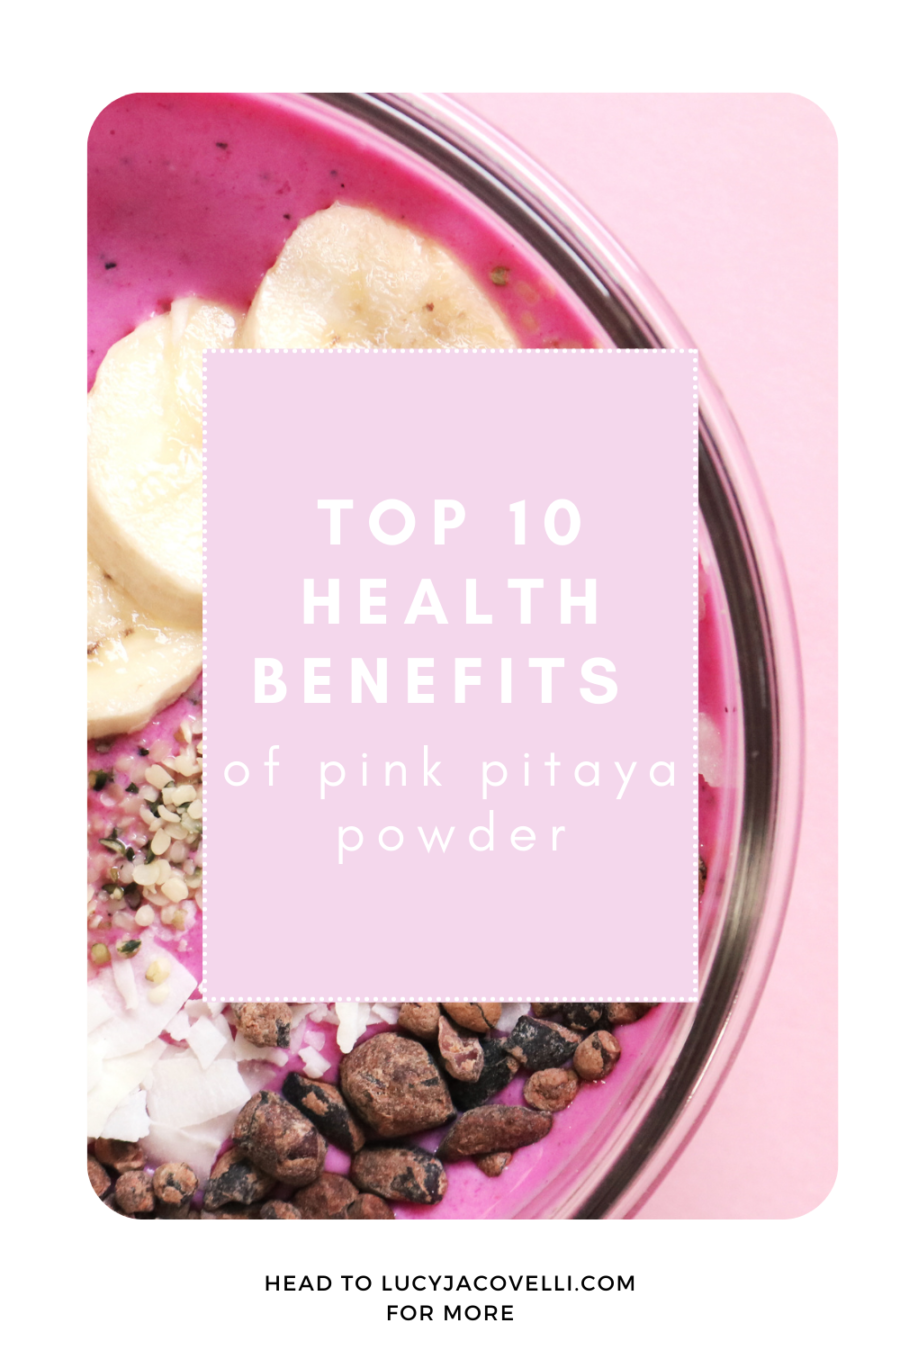 pink pitaya powder benefits